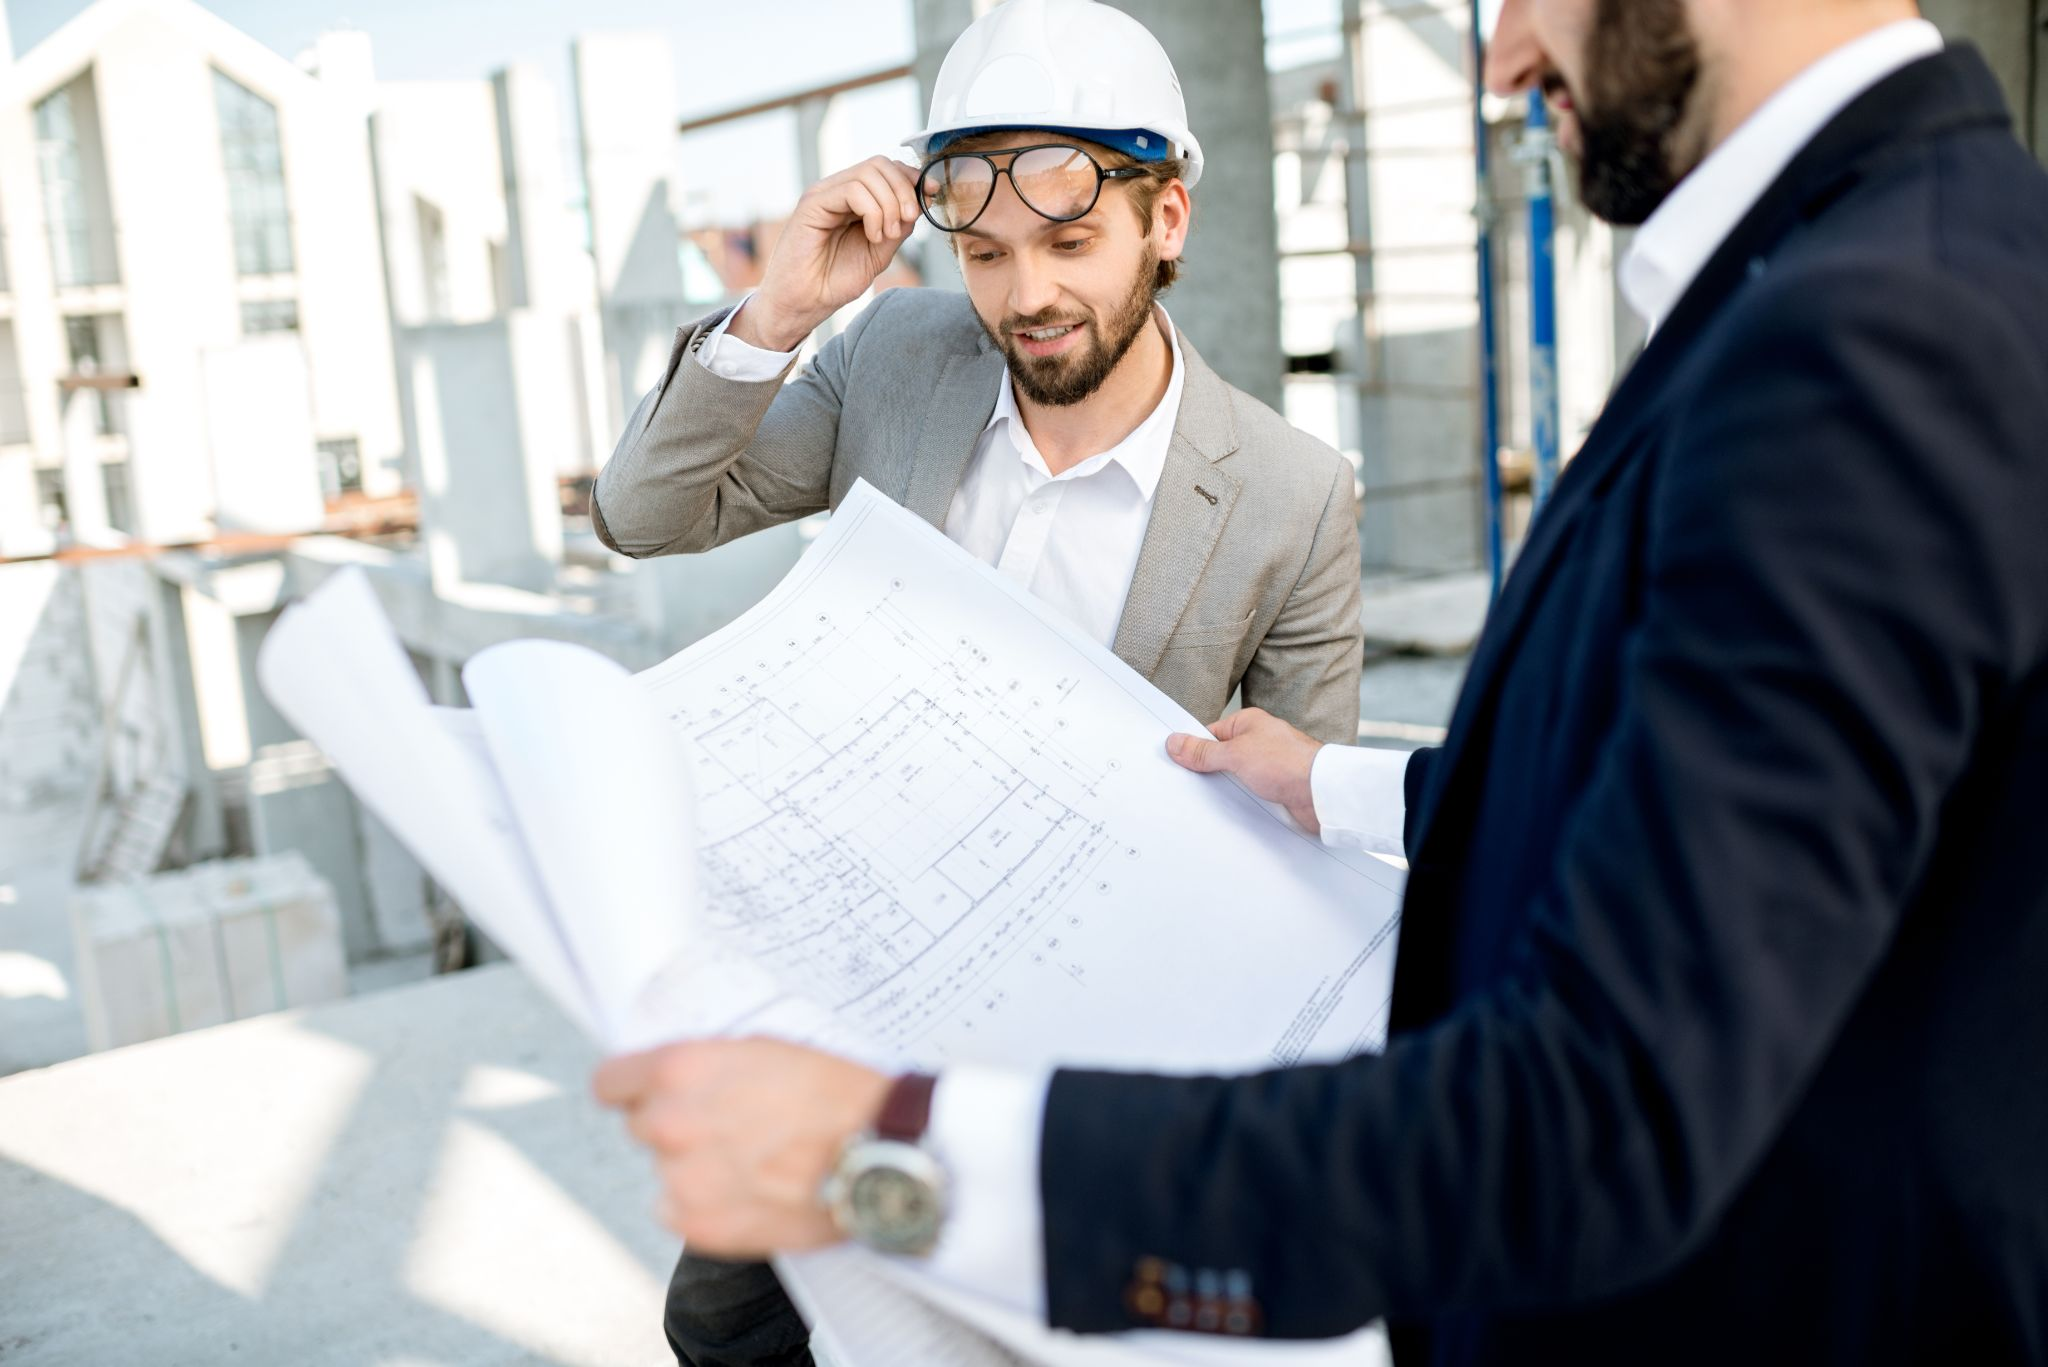 Two structural engineers wearing hard hats and looking over blueprints.